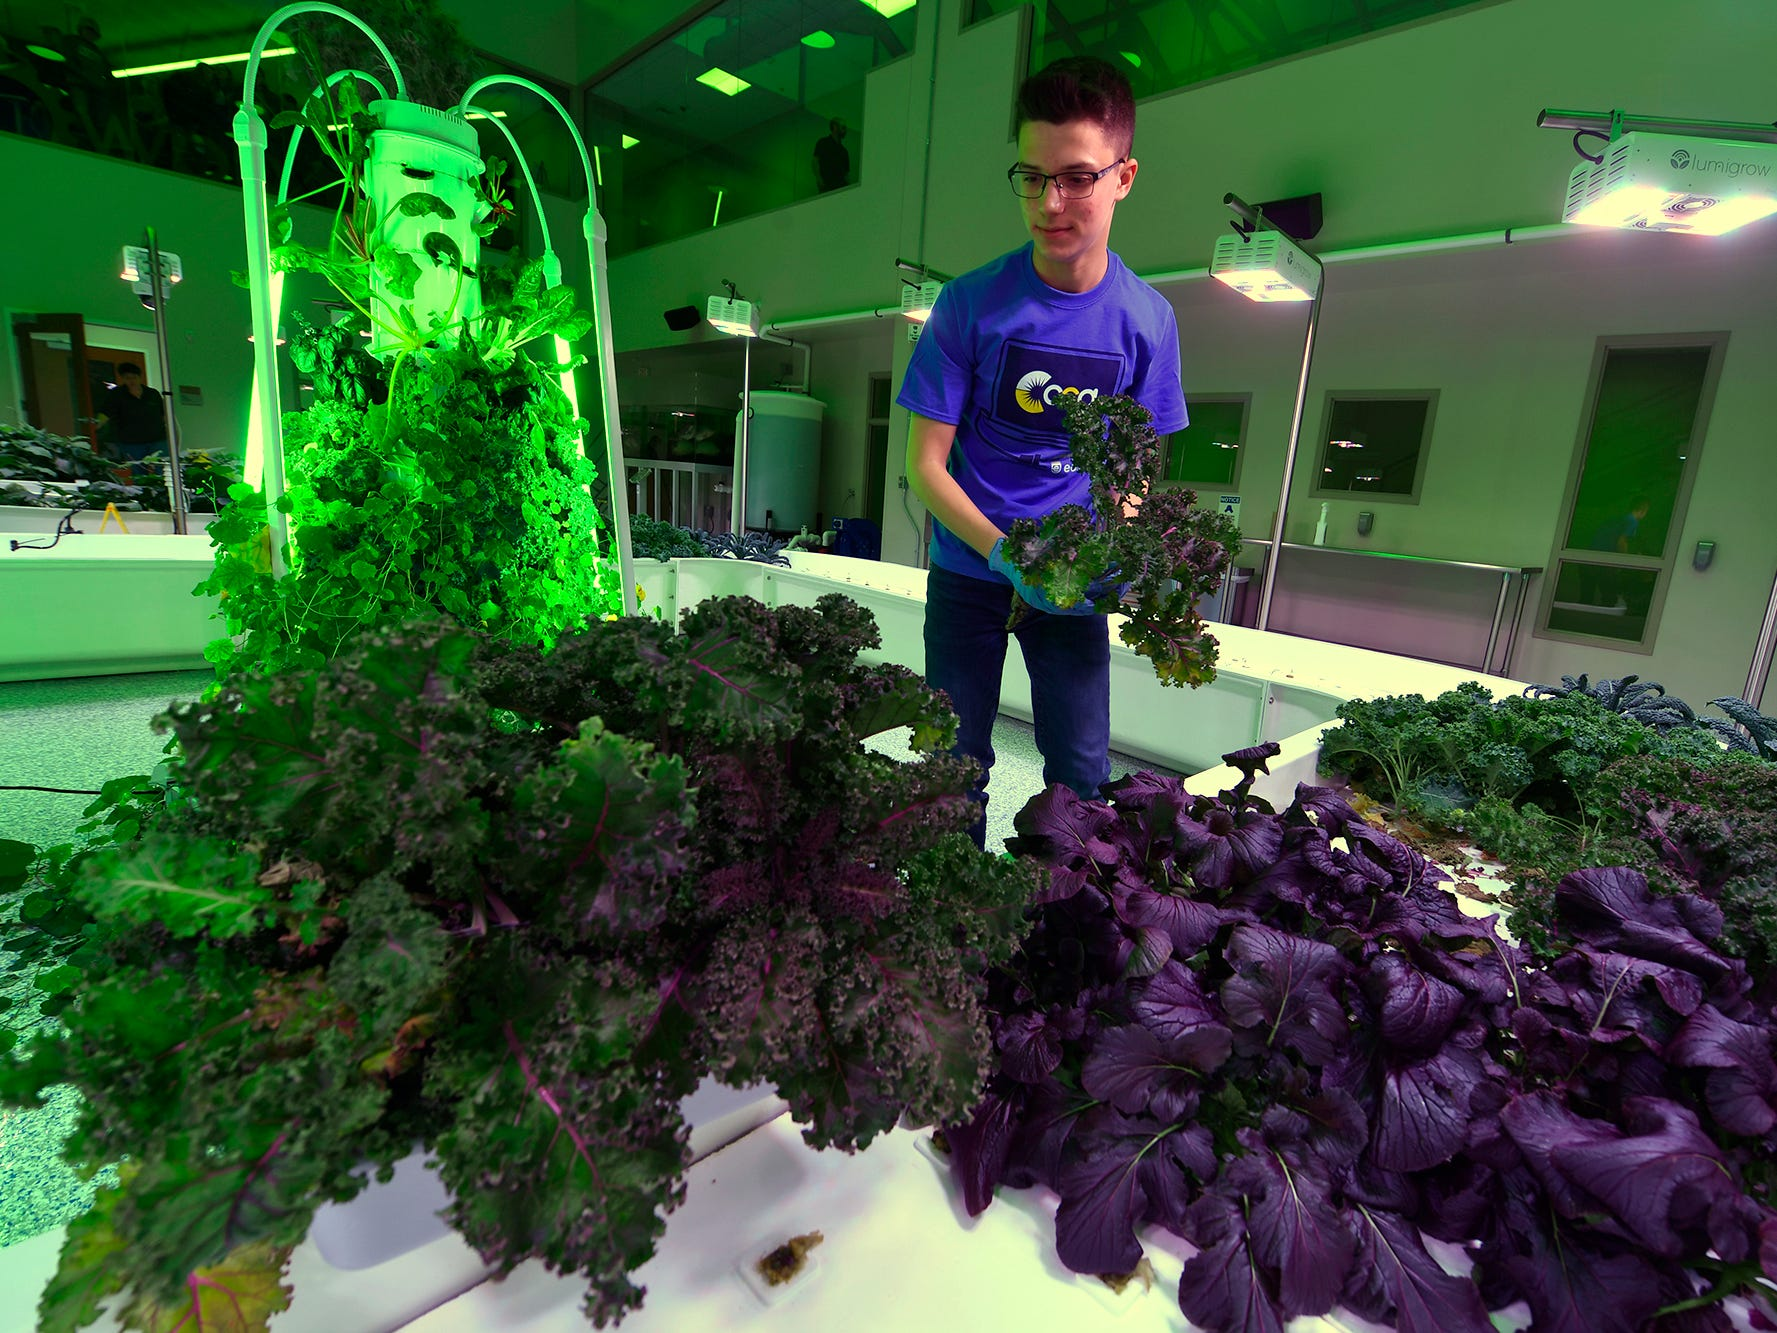 Nathaniel Saxe, a CCA junior from Springettsbury Township, harvests kale at the Agworks aquaponics facility in Harrisburg, Tuesday, January 8, 2019.  